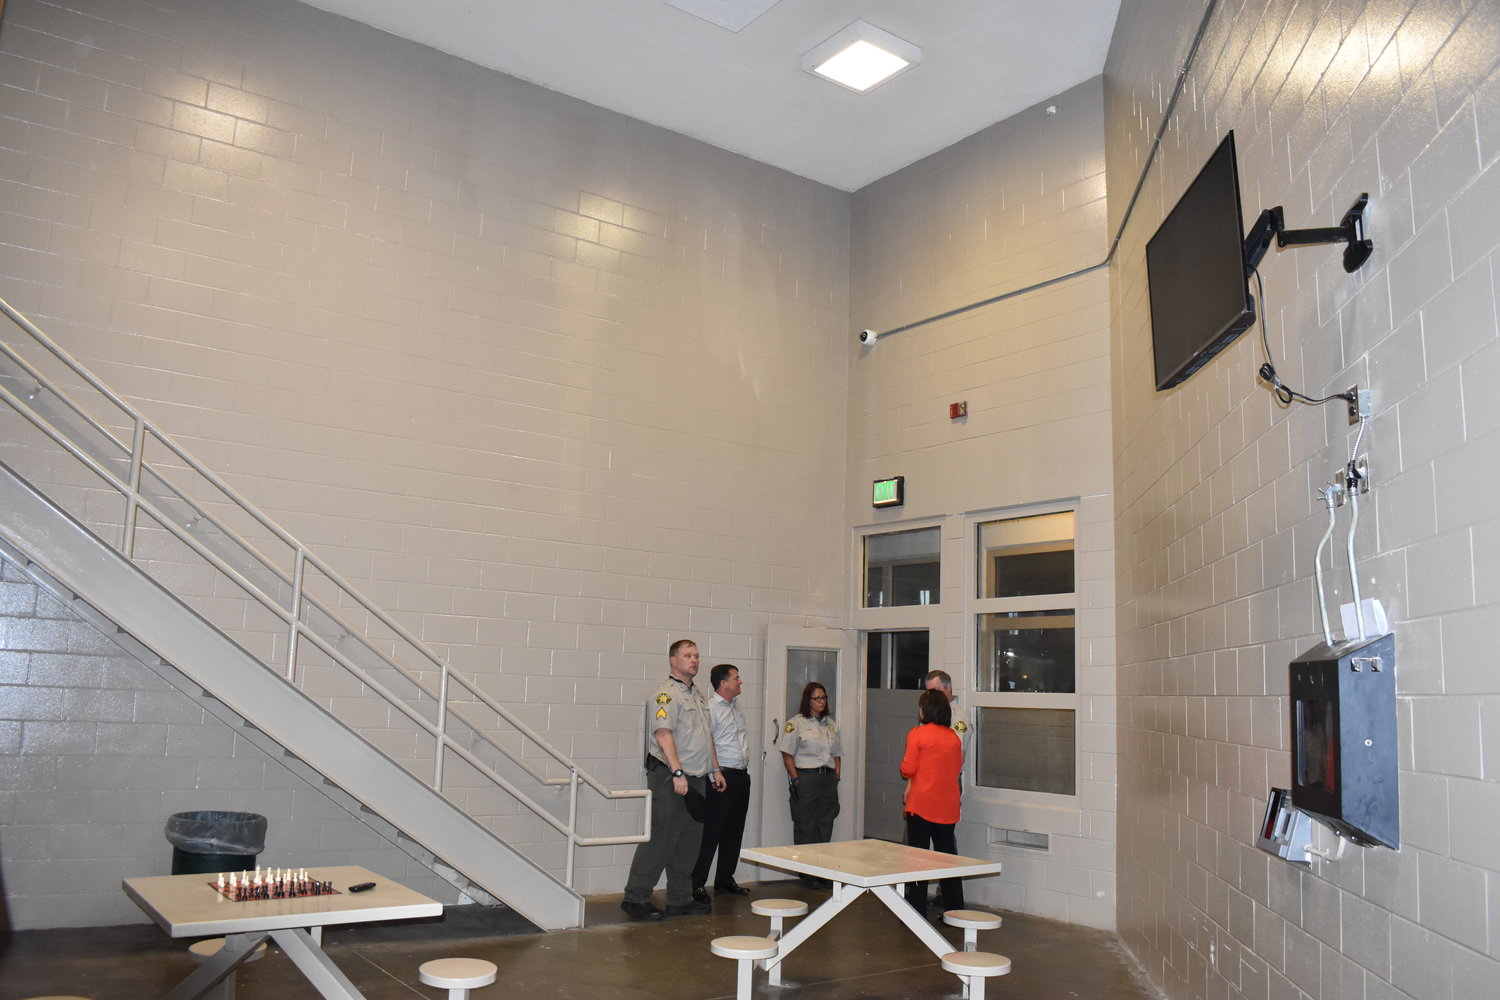 Tour given of jail improvements | Daily Mountain Eagle